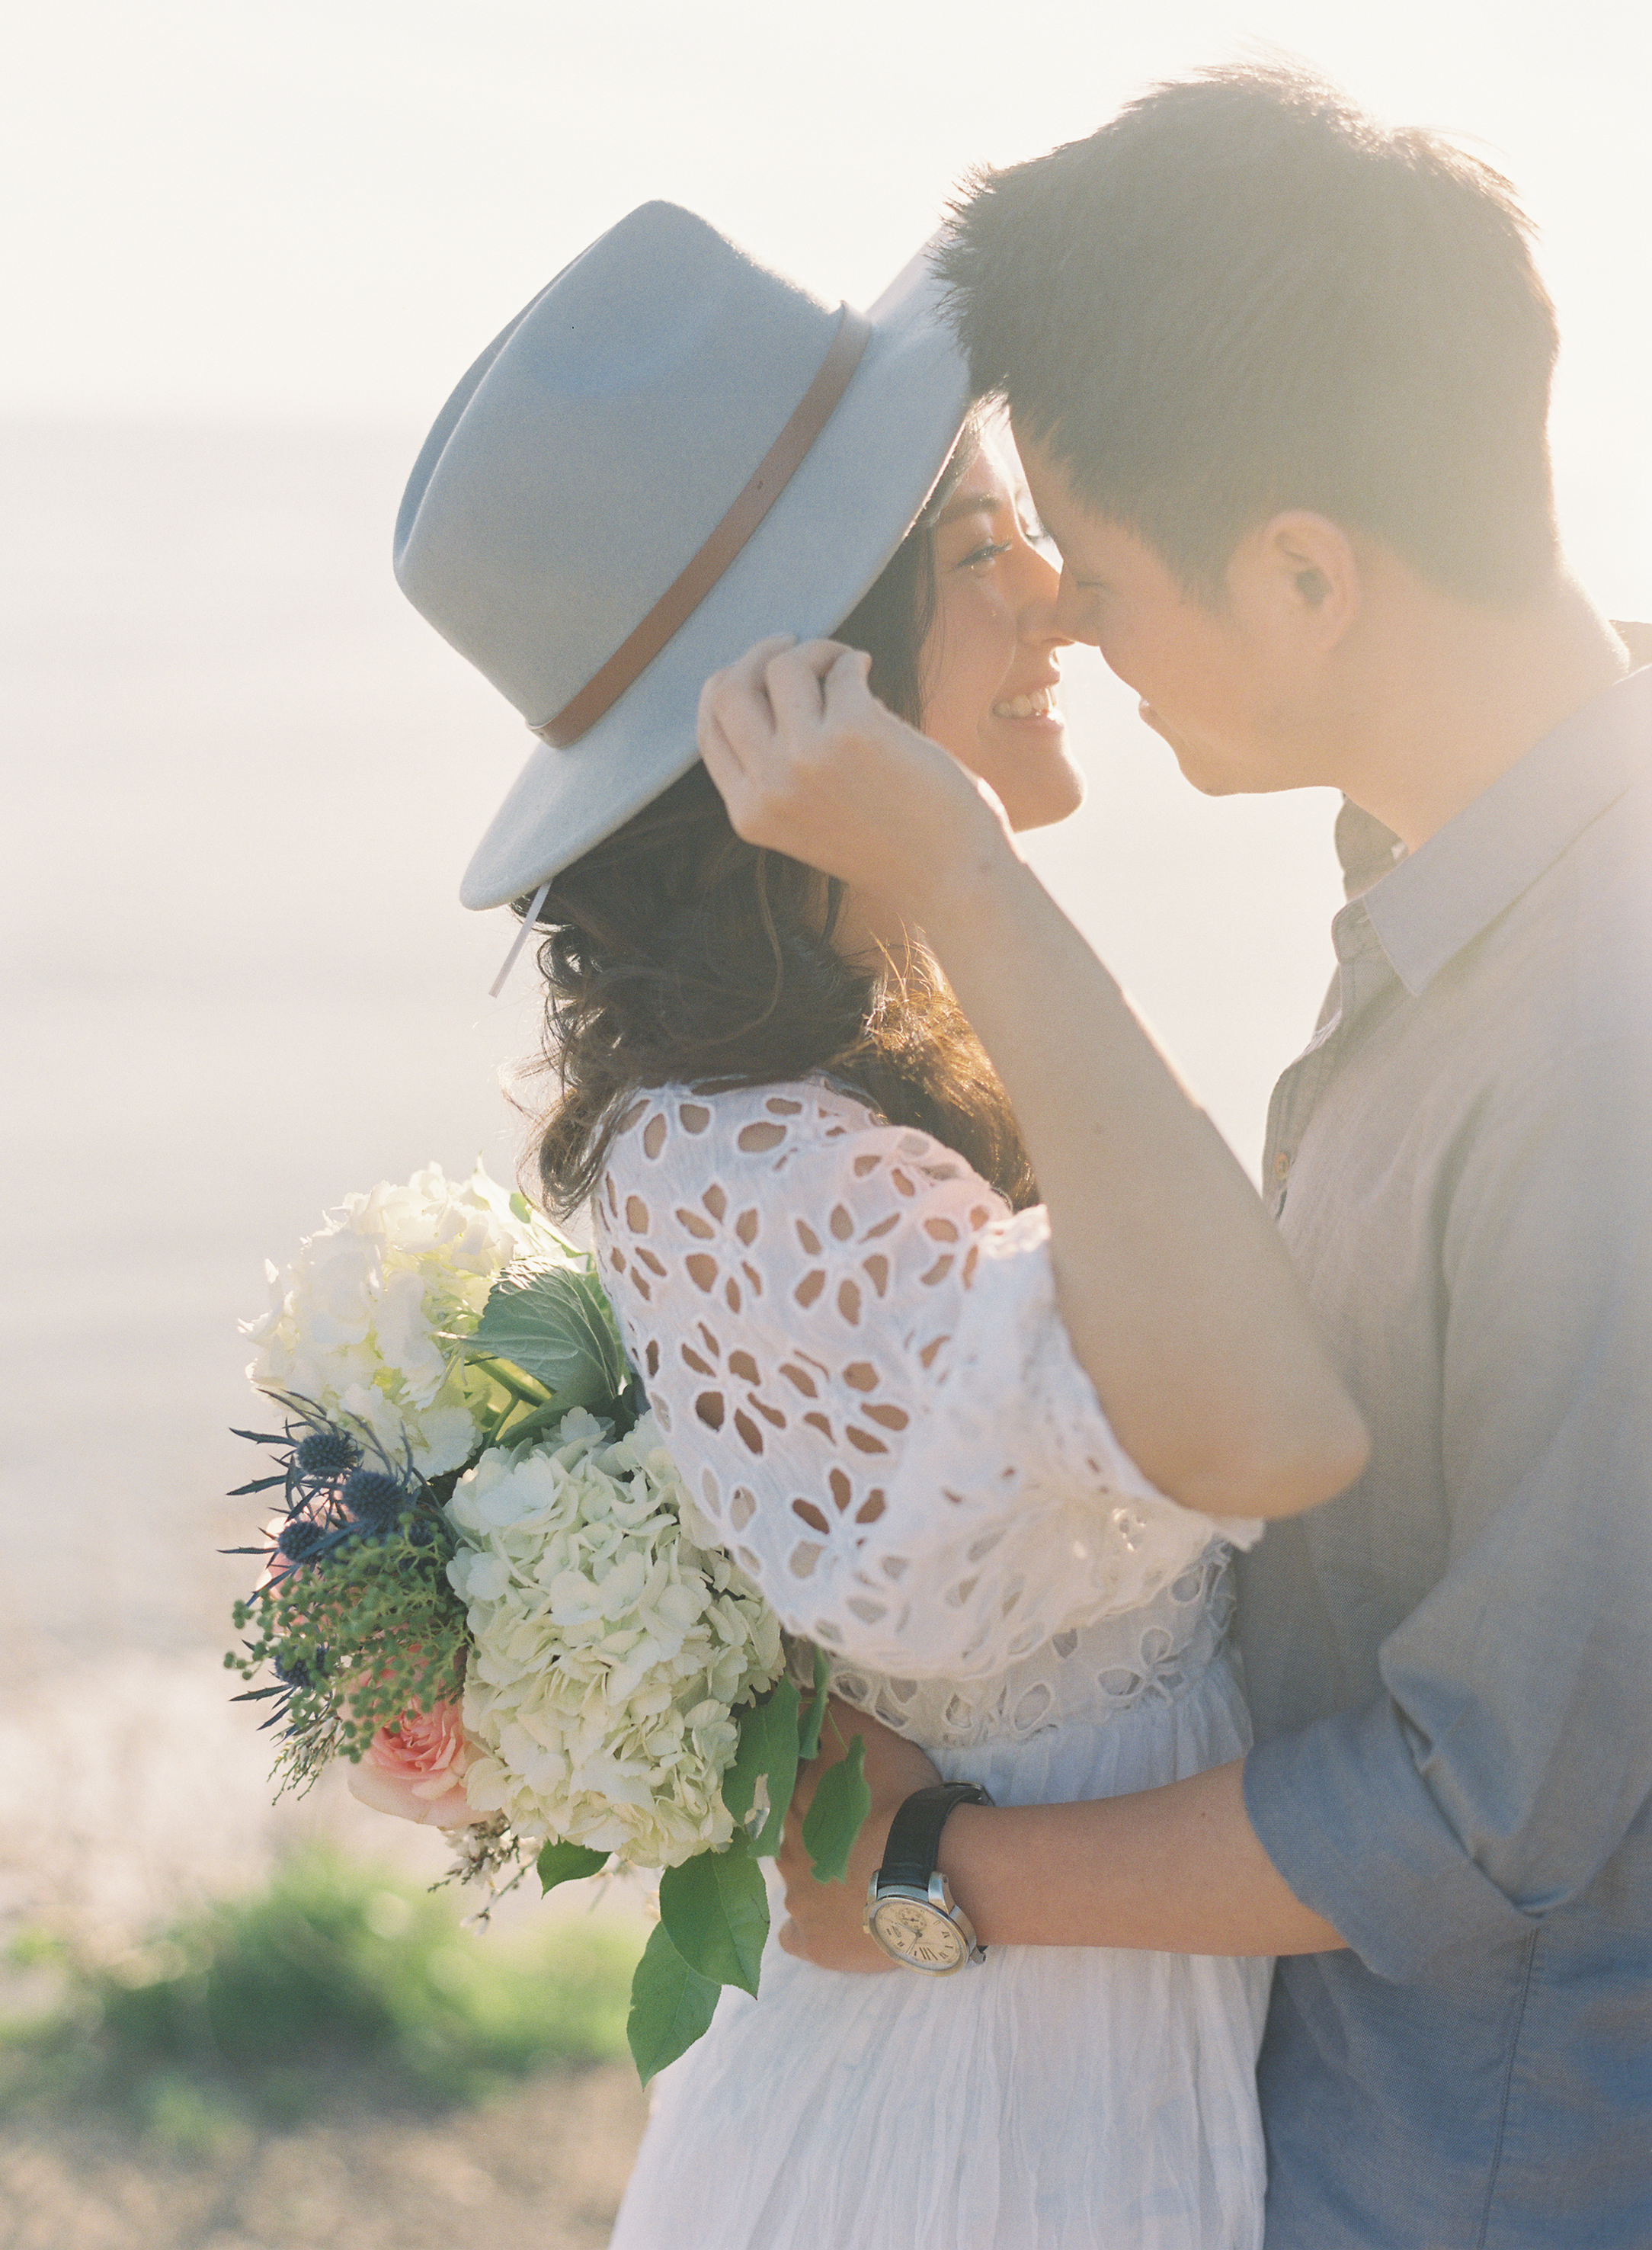 Couple about to kiss with sunset in the background and woman holding onto hat, man holding white and pink flowers